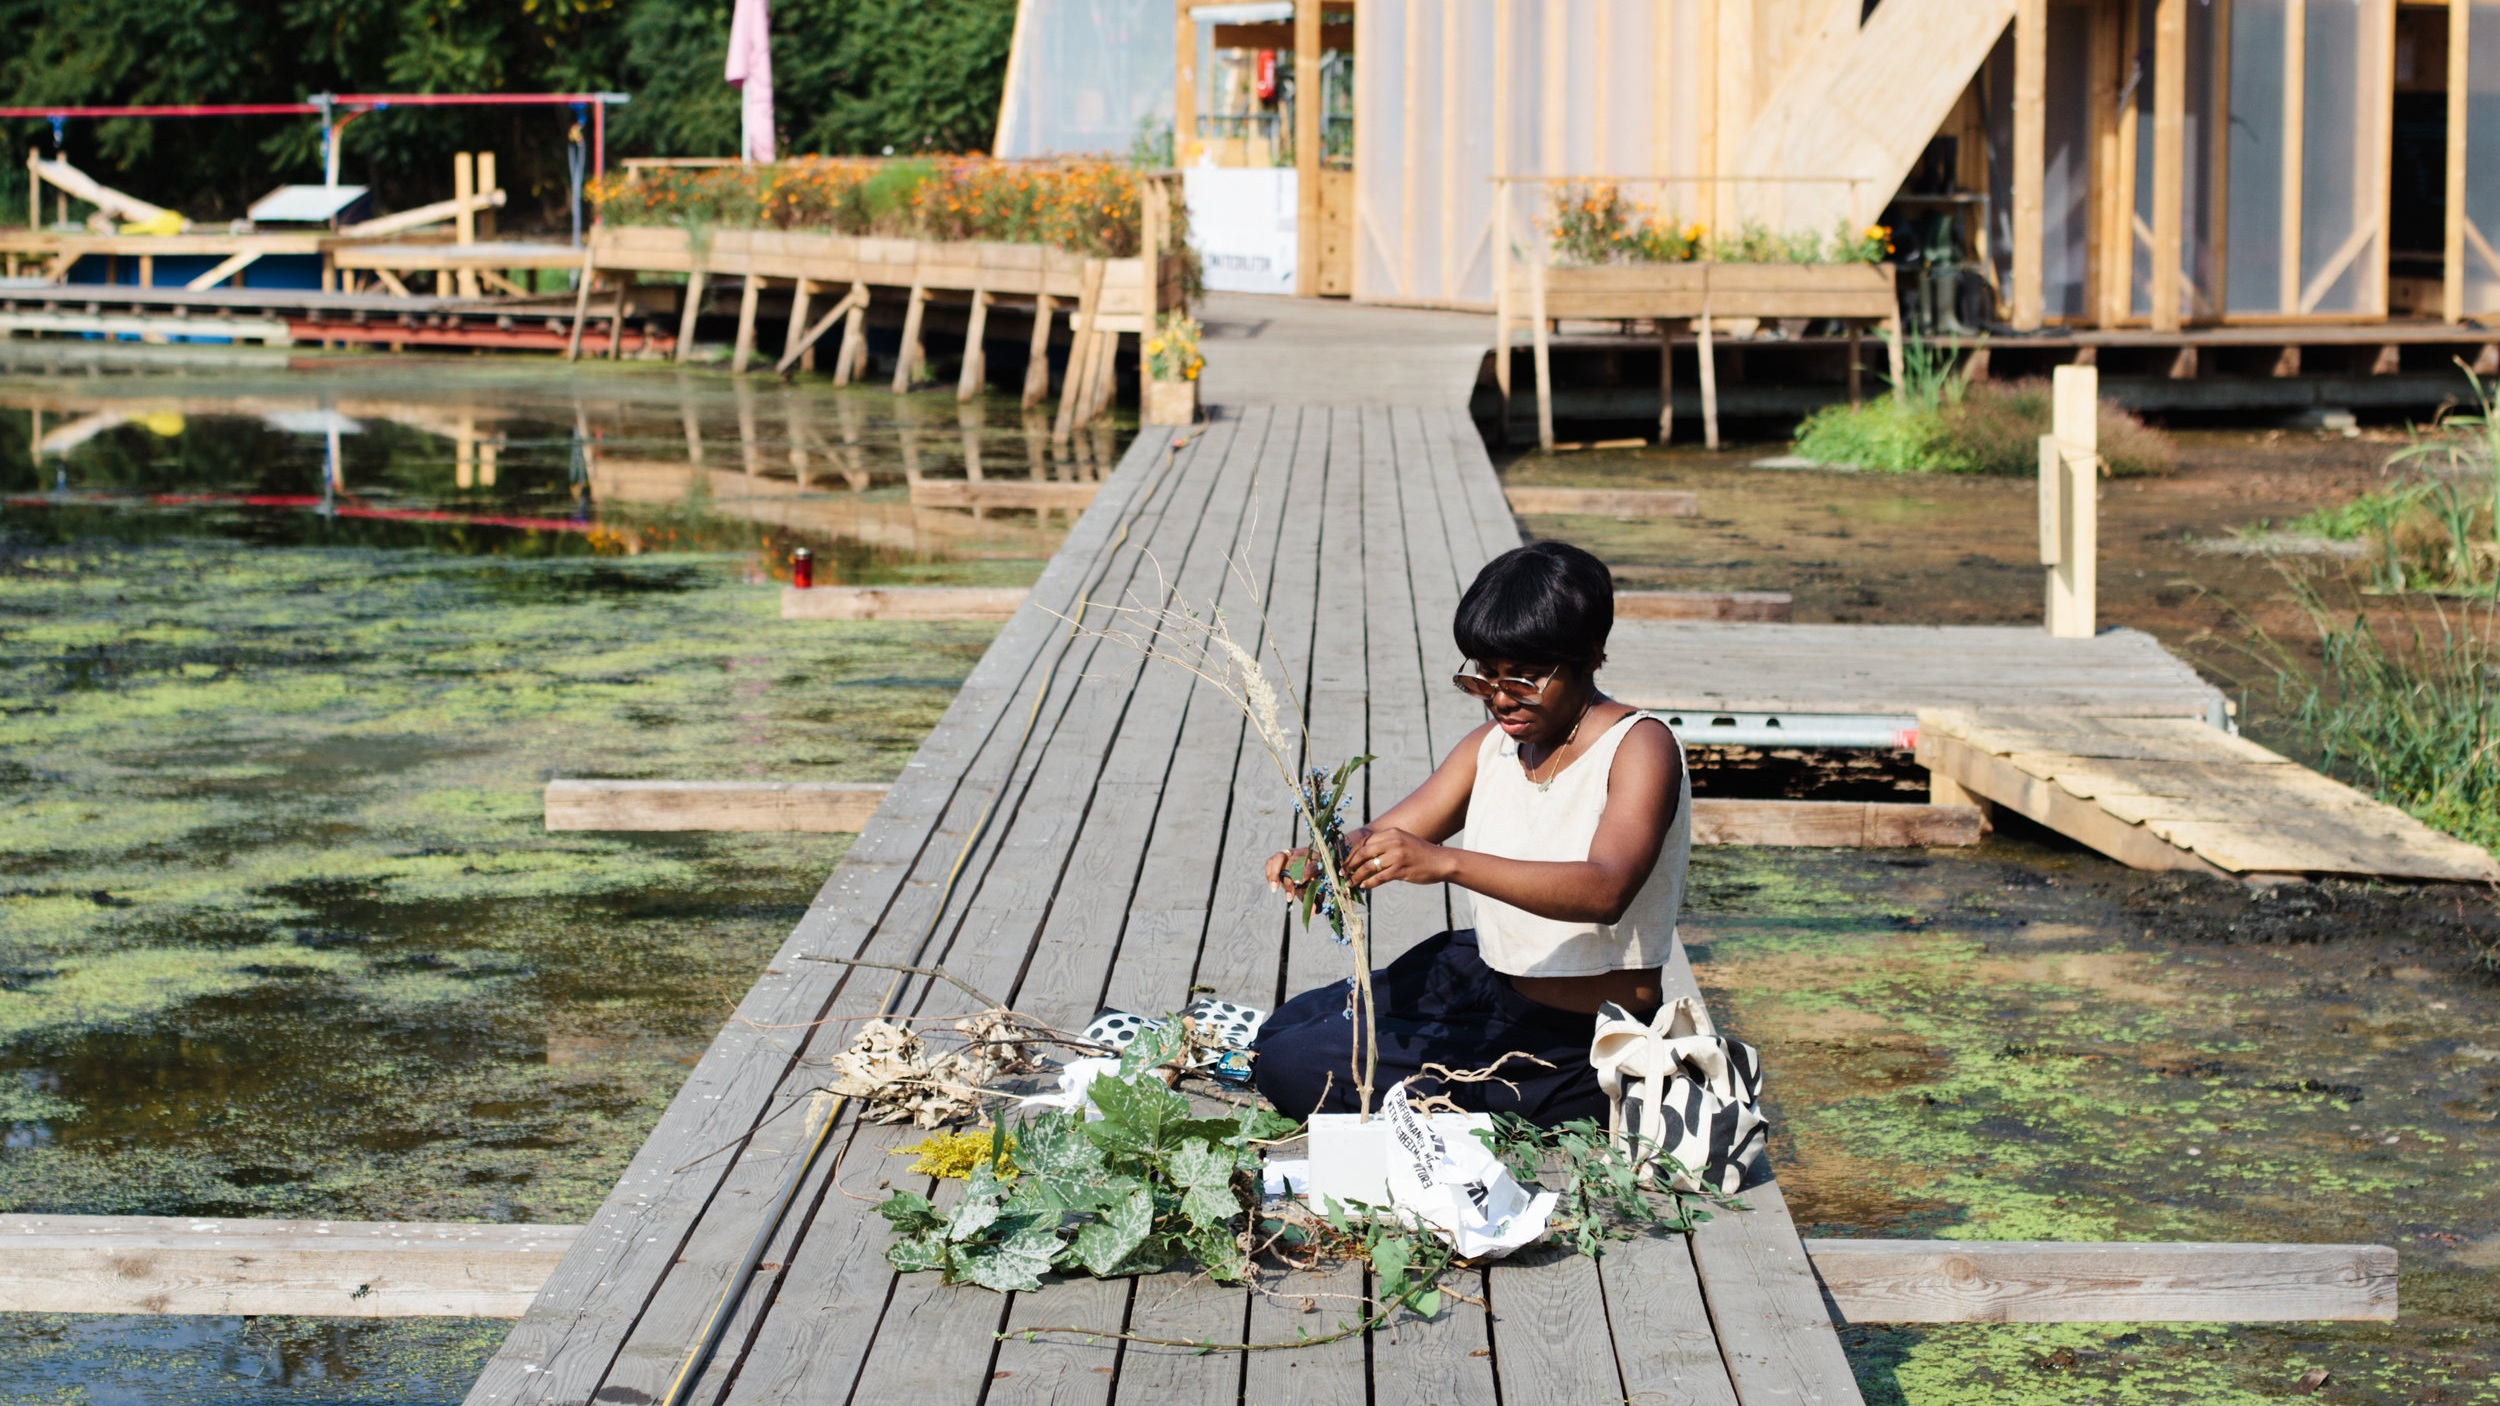 Free style urban Ikebana at Floating University Berlin. Photography: Lilia Luganskaia